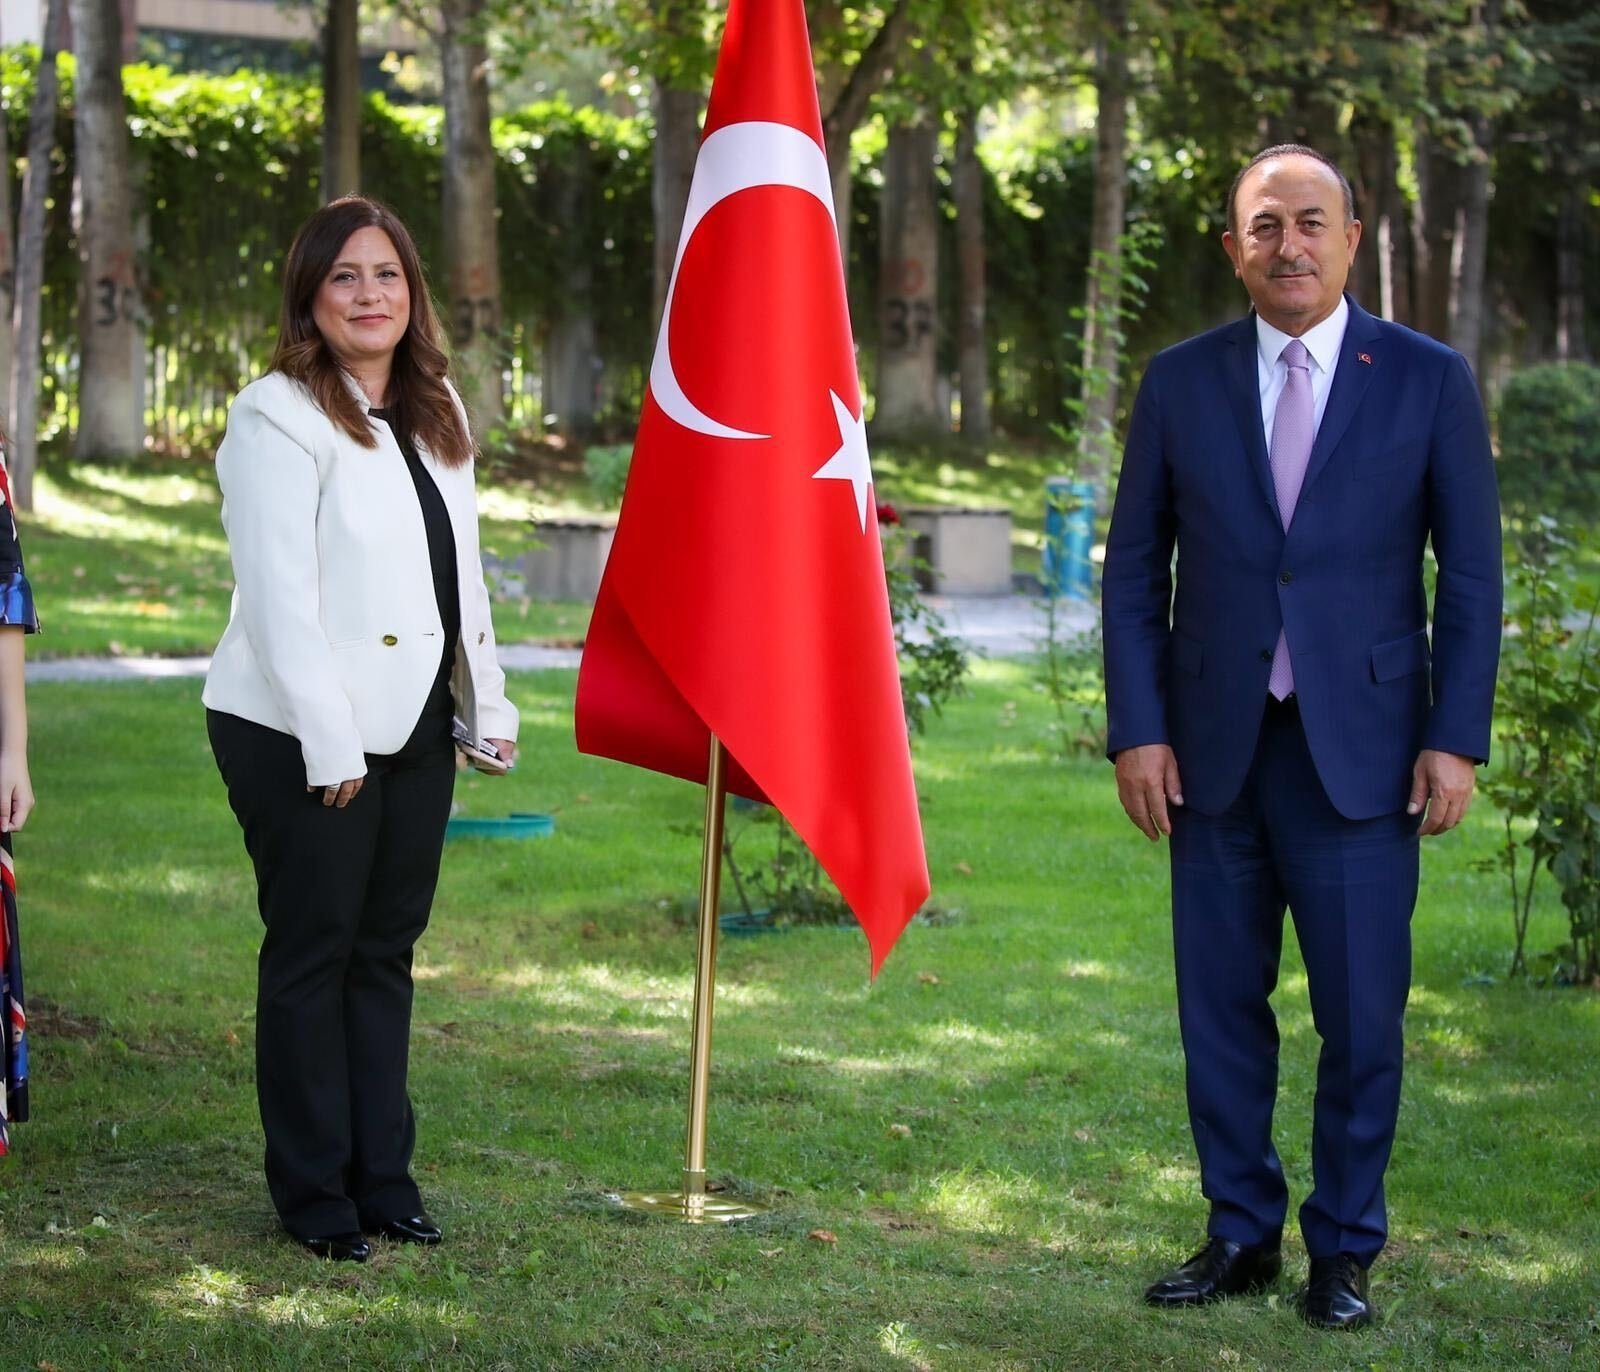 Foreign Minister Mevlüt Çavuşoğlu stands beside Daily Sabah Ankara Representative Nur Özkan Erbay, Ankara, Turkey, Sept. 2, 2020. (Courtesy of the Foreign Ministry)